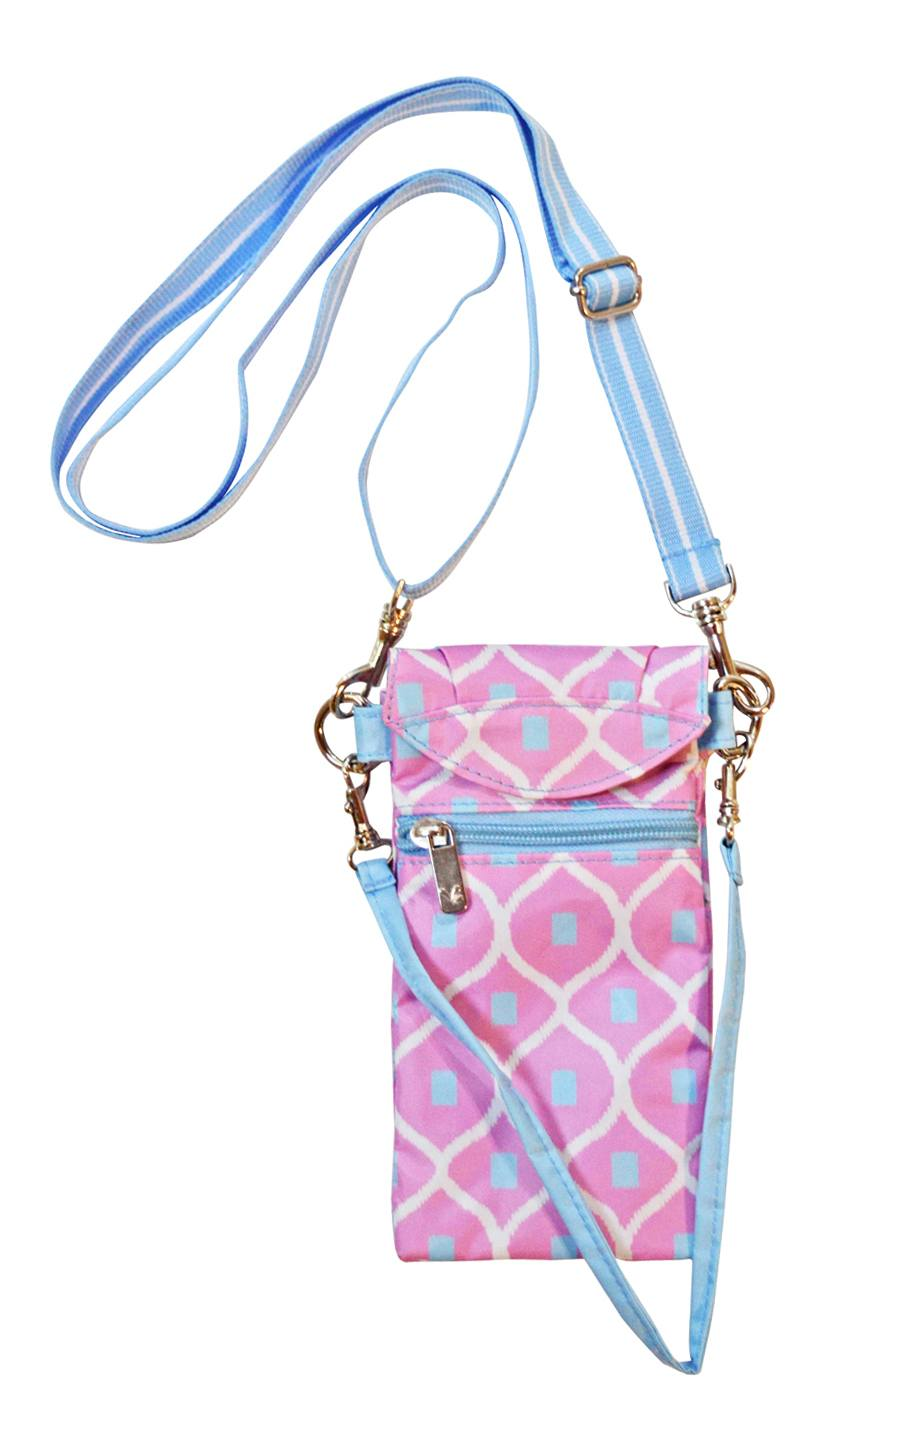 Good Catch Smartphone Crossbody Bag